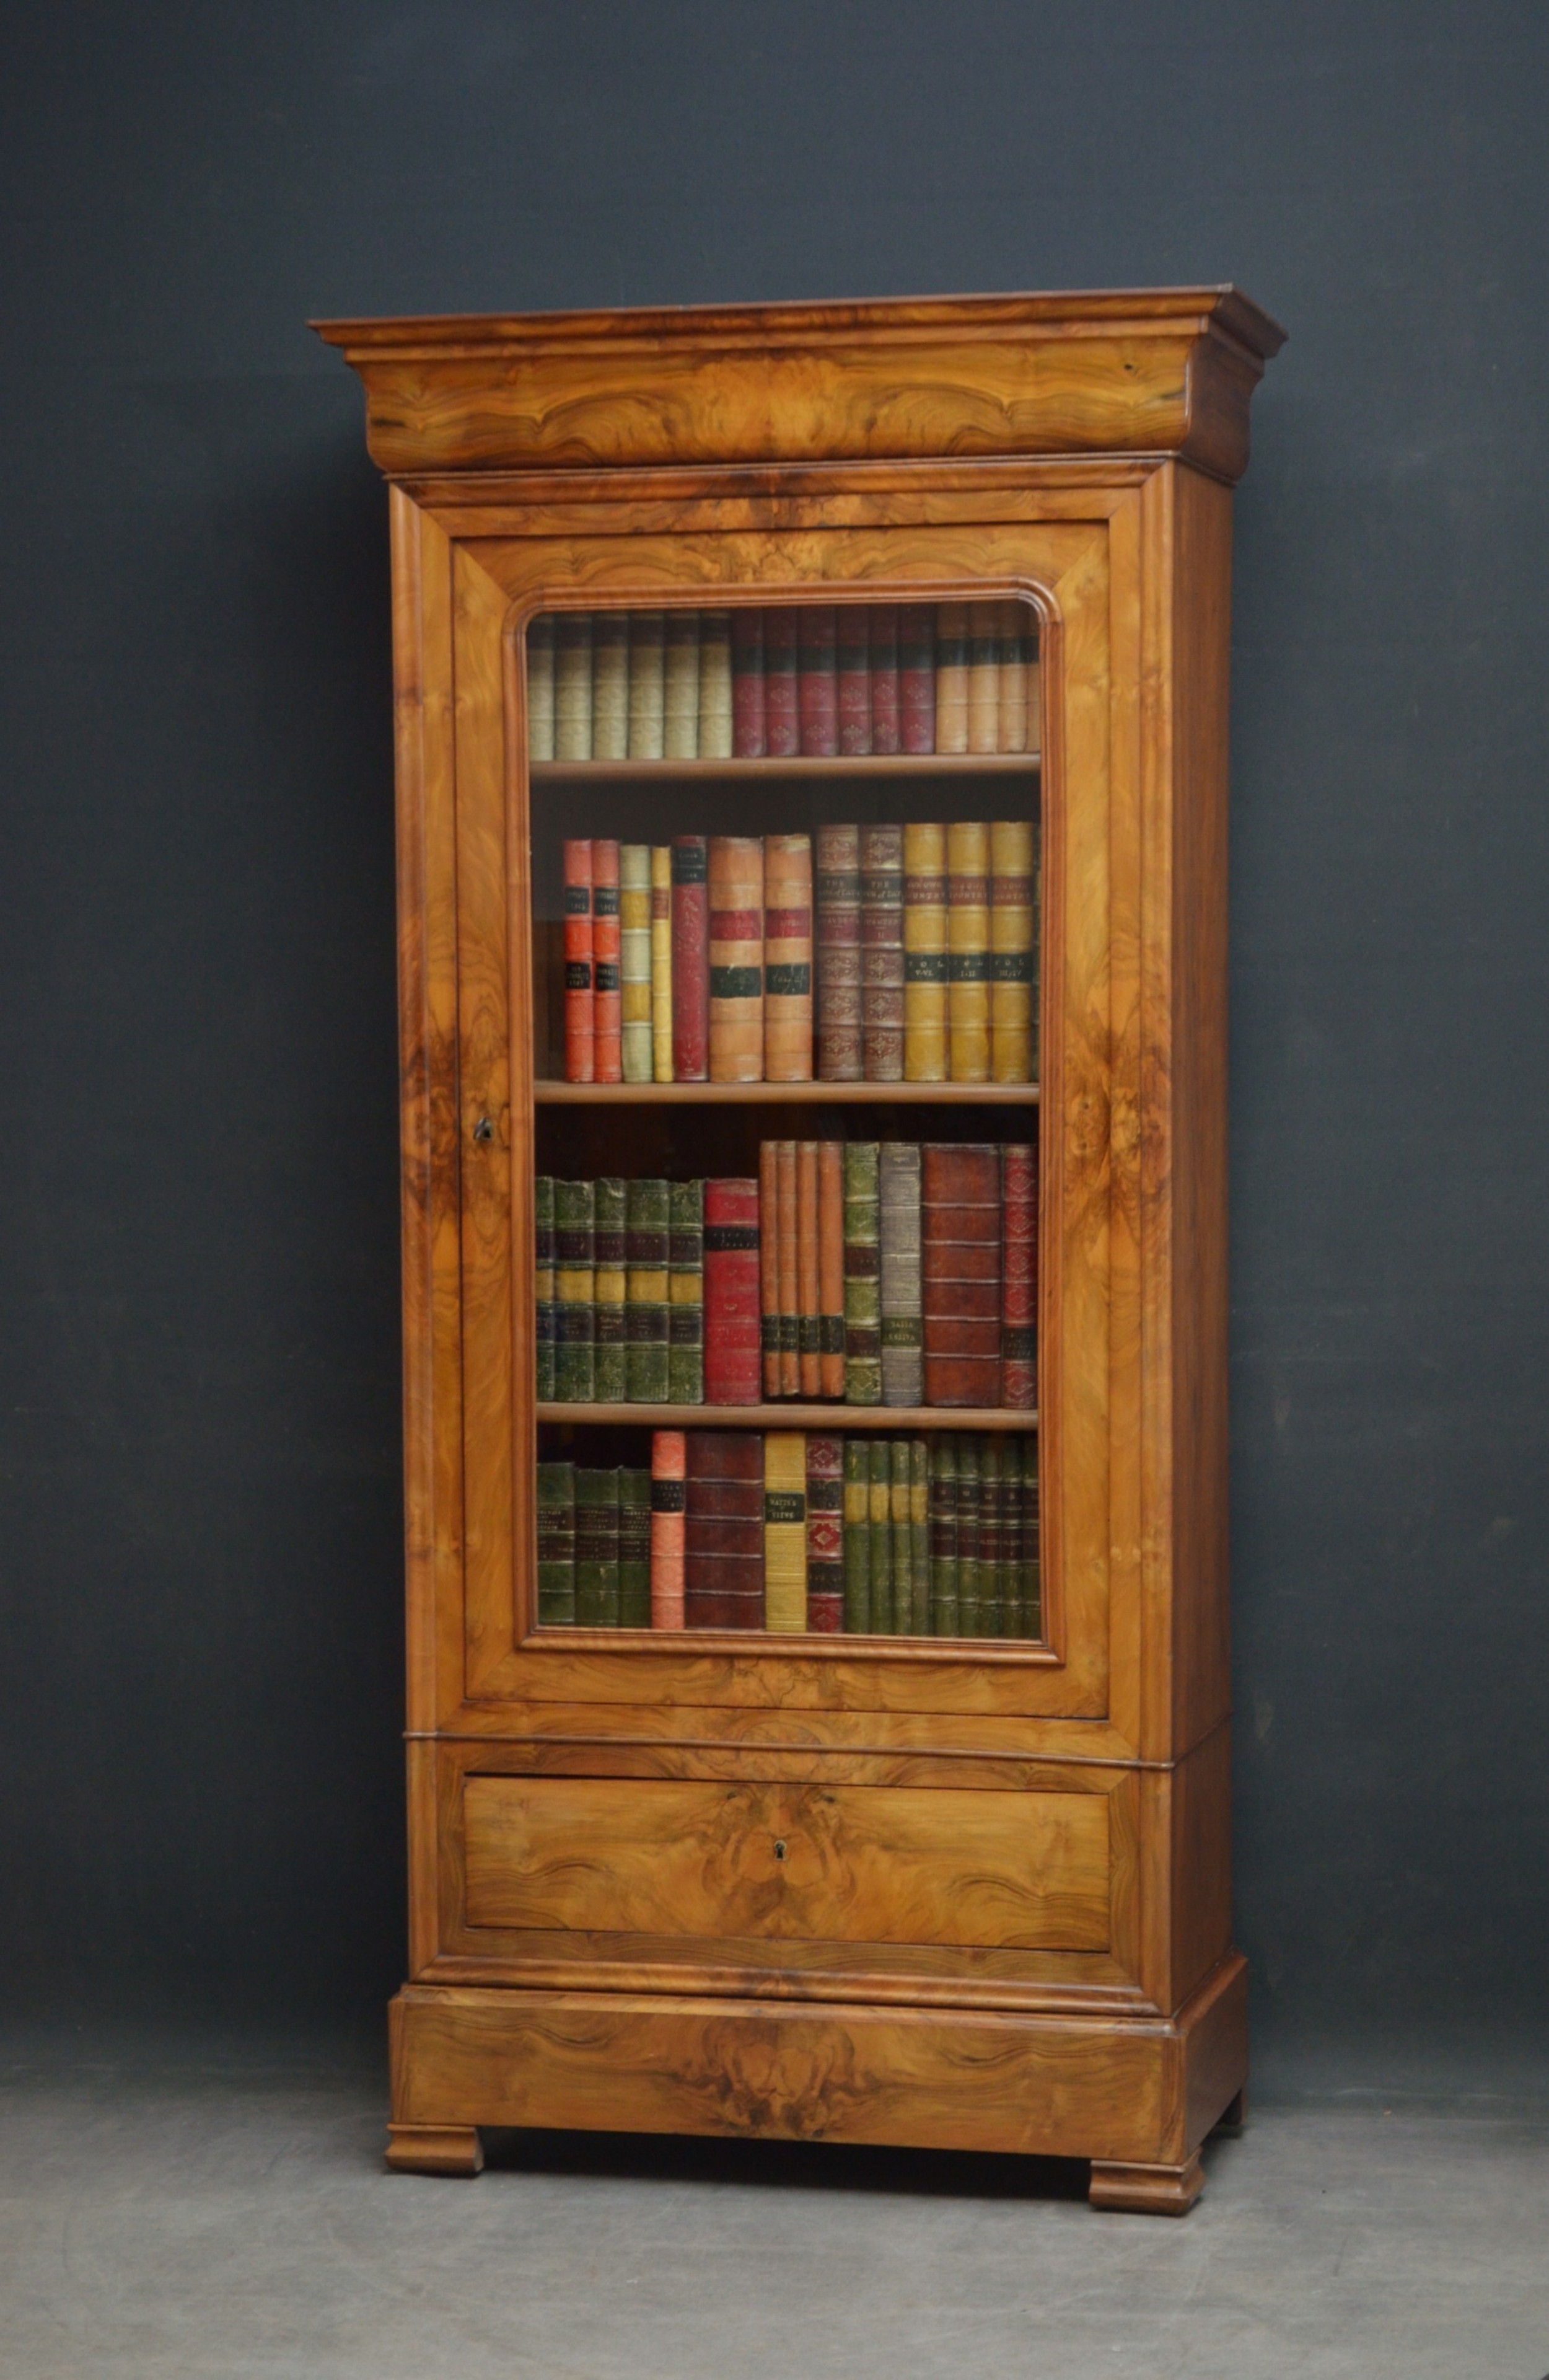 19th century continental figured walnut bookcase of small proportions